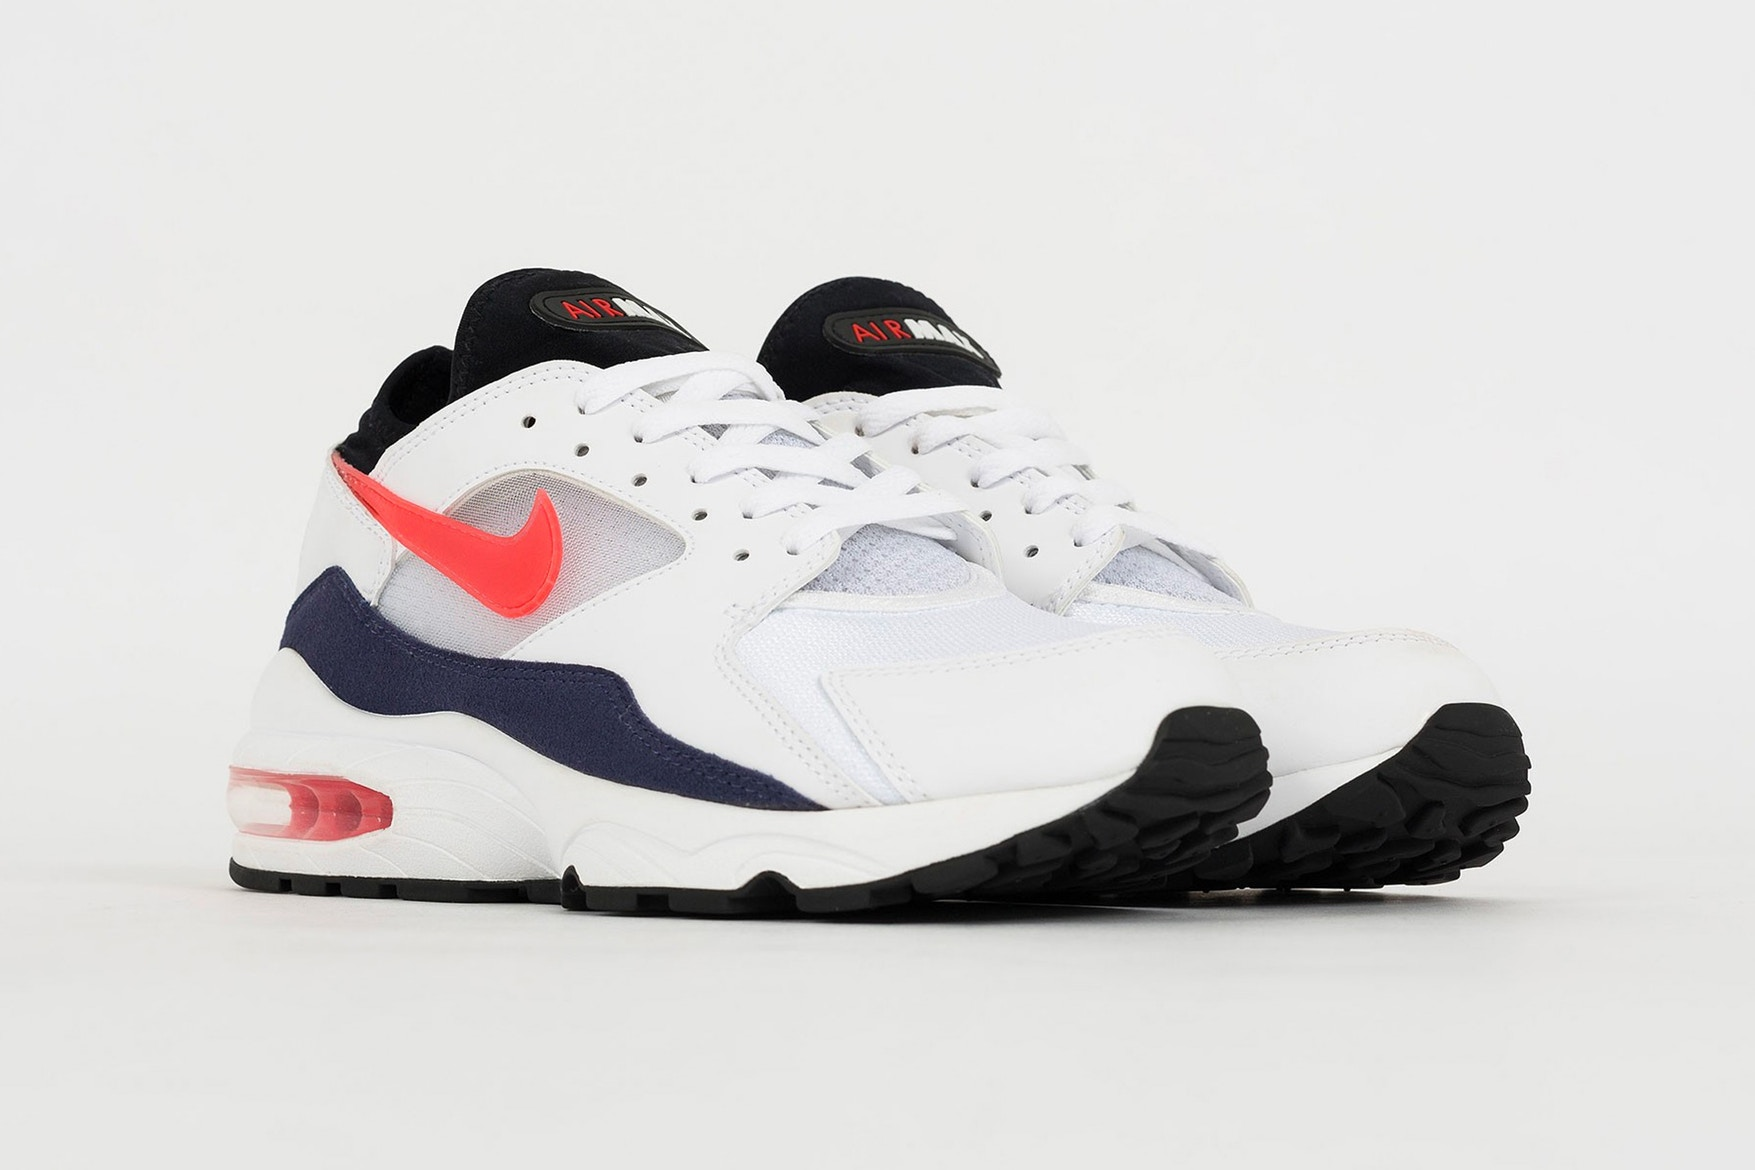 """The Nike Air Max 93 """"Flame Red"""" is Set to Make a Comeback – PAUSE Online 